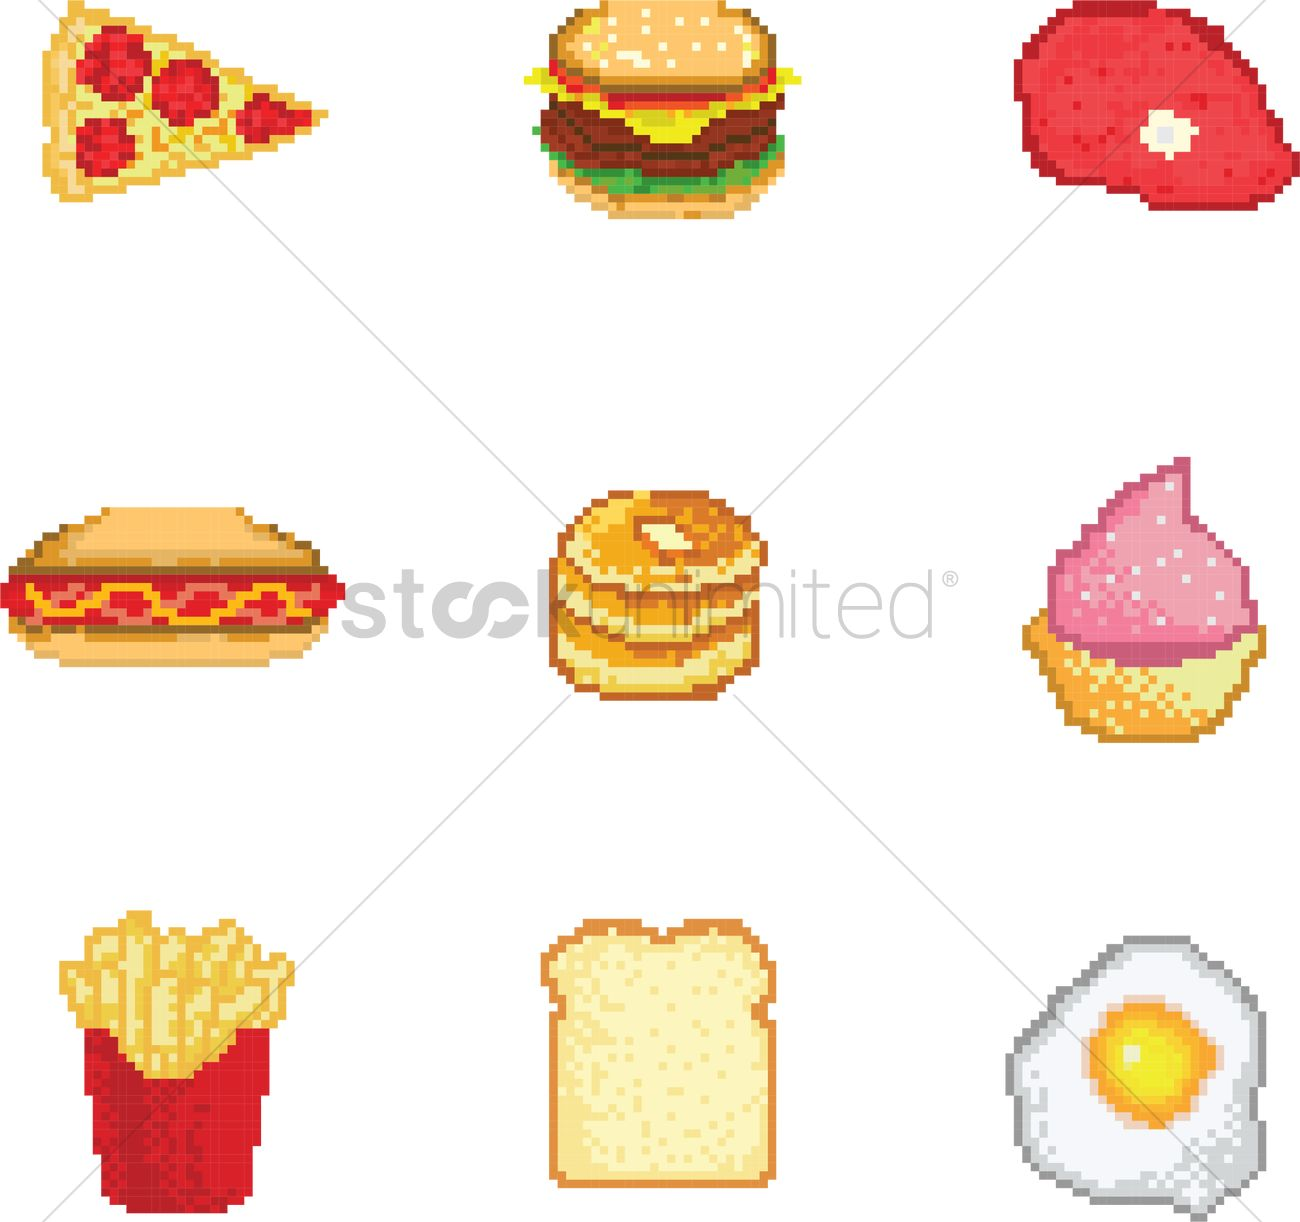 Set Of Food Pixel Art Vector Image 2021150 Stockunlimited